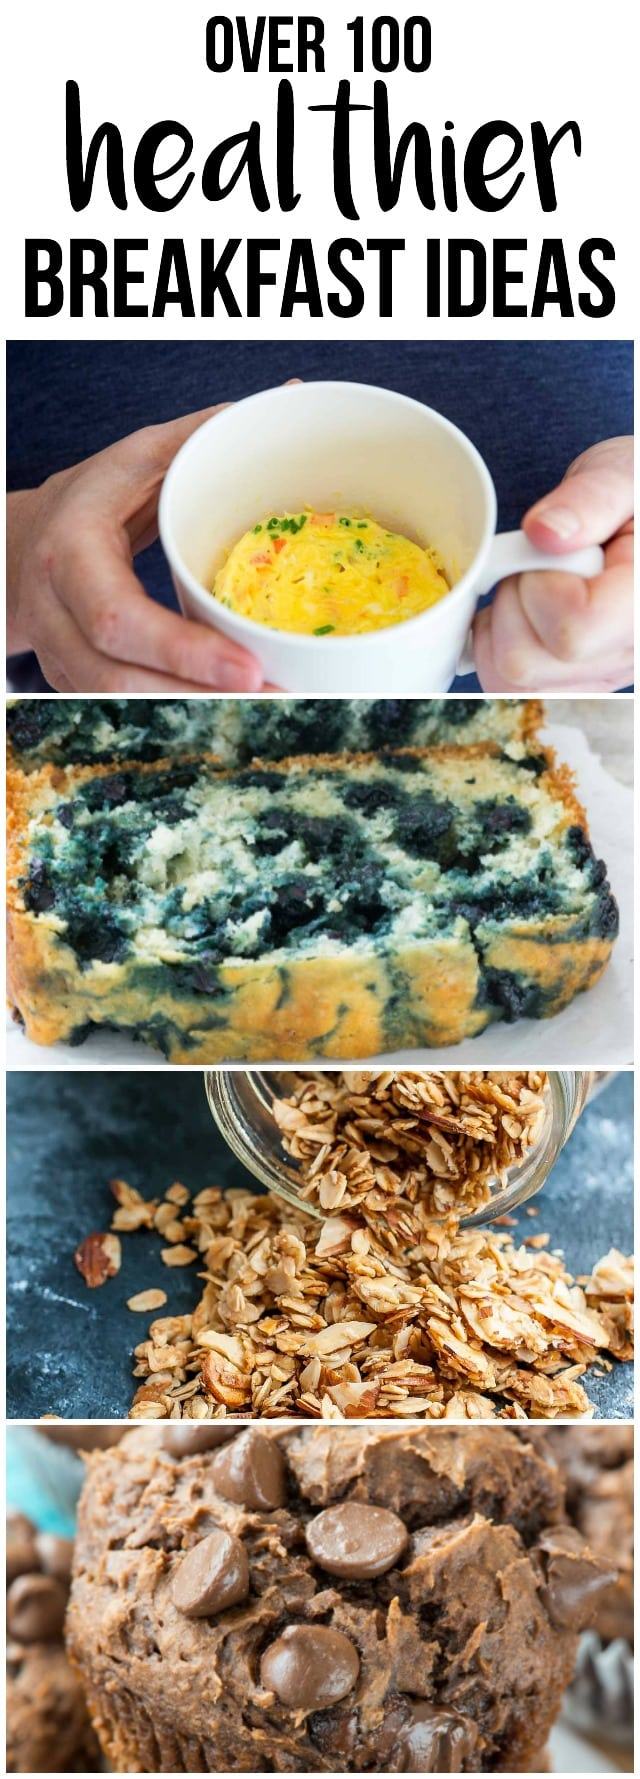 Over 100 Skinny Breakfast Ideas perfect for a healthier morning meal! Pancakes, muffins, oats, eggs, and more on this ultimate guide to breakfast recipes.